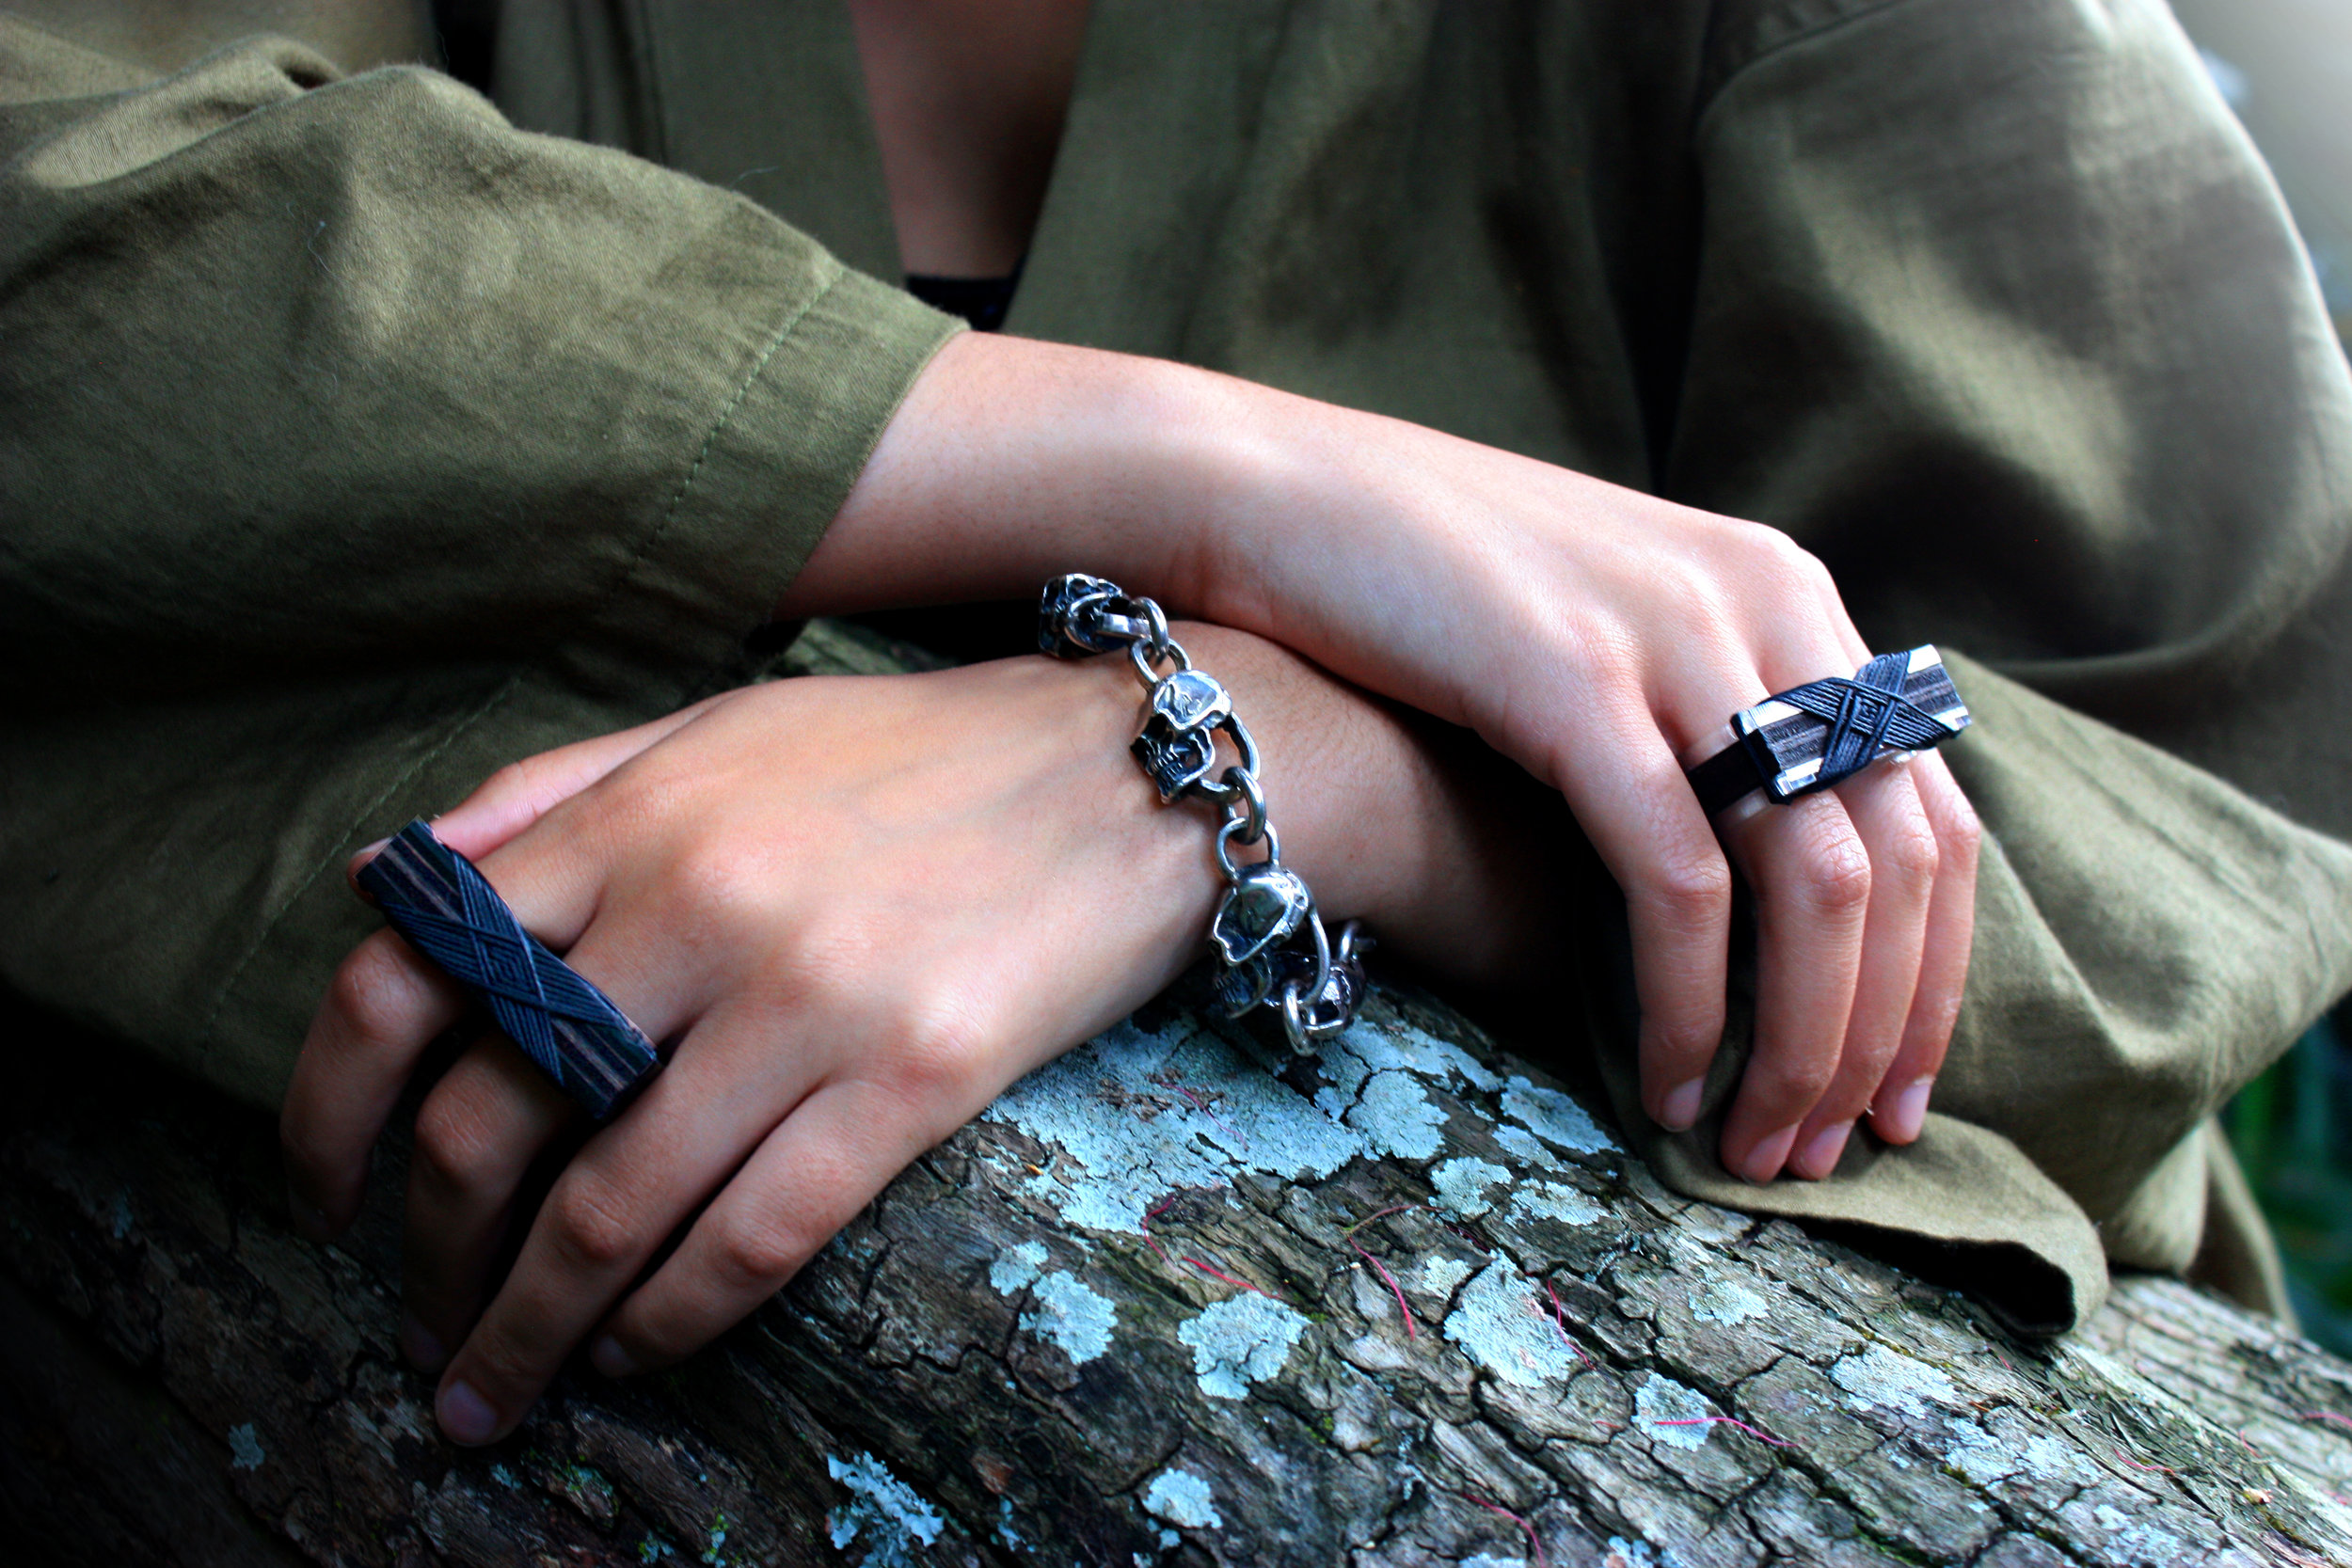 Black Binding on Black Knuckle Ring and Black Binding on Wood and Arcylic Amai / Knuckle Ring (Bracelet not for sale)